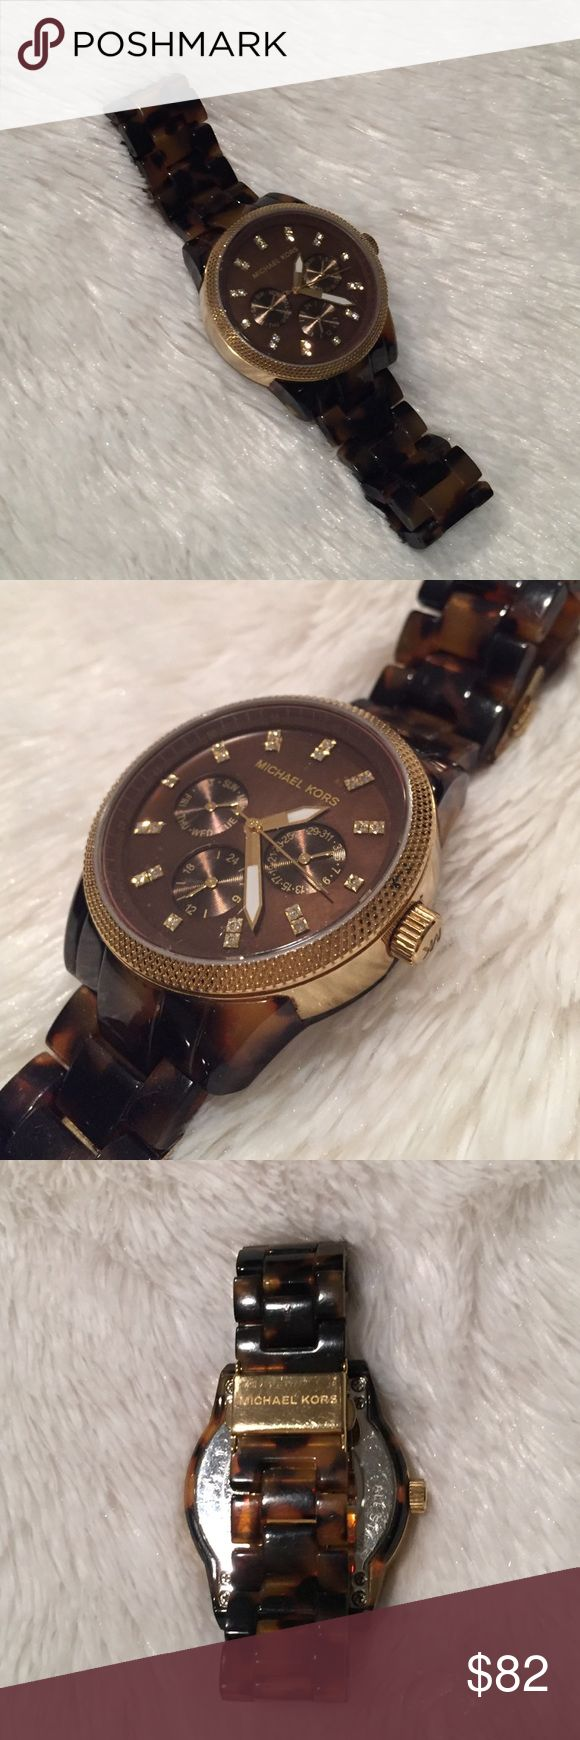 Michael Kors Tortoise Watch Michael Kors watch with tortoise band and gold rim. Good condition, only worn a few times. Michael Kors Accessories Watches